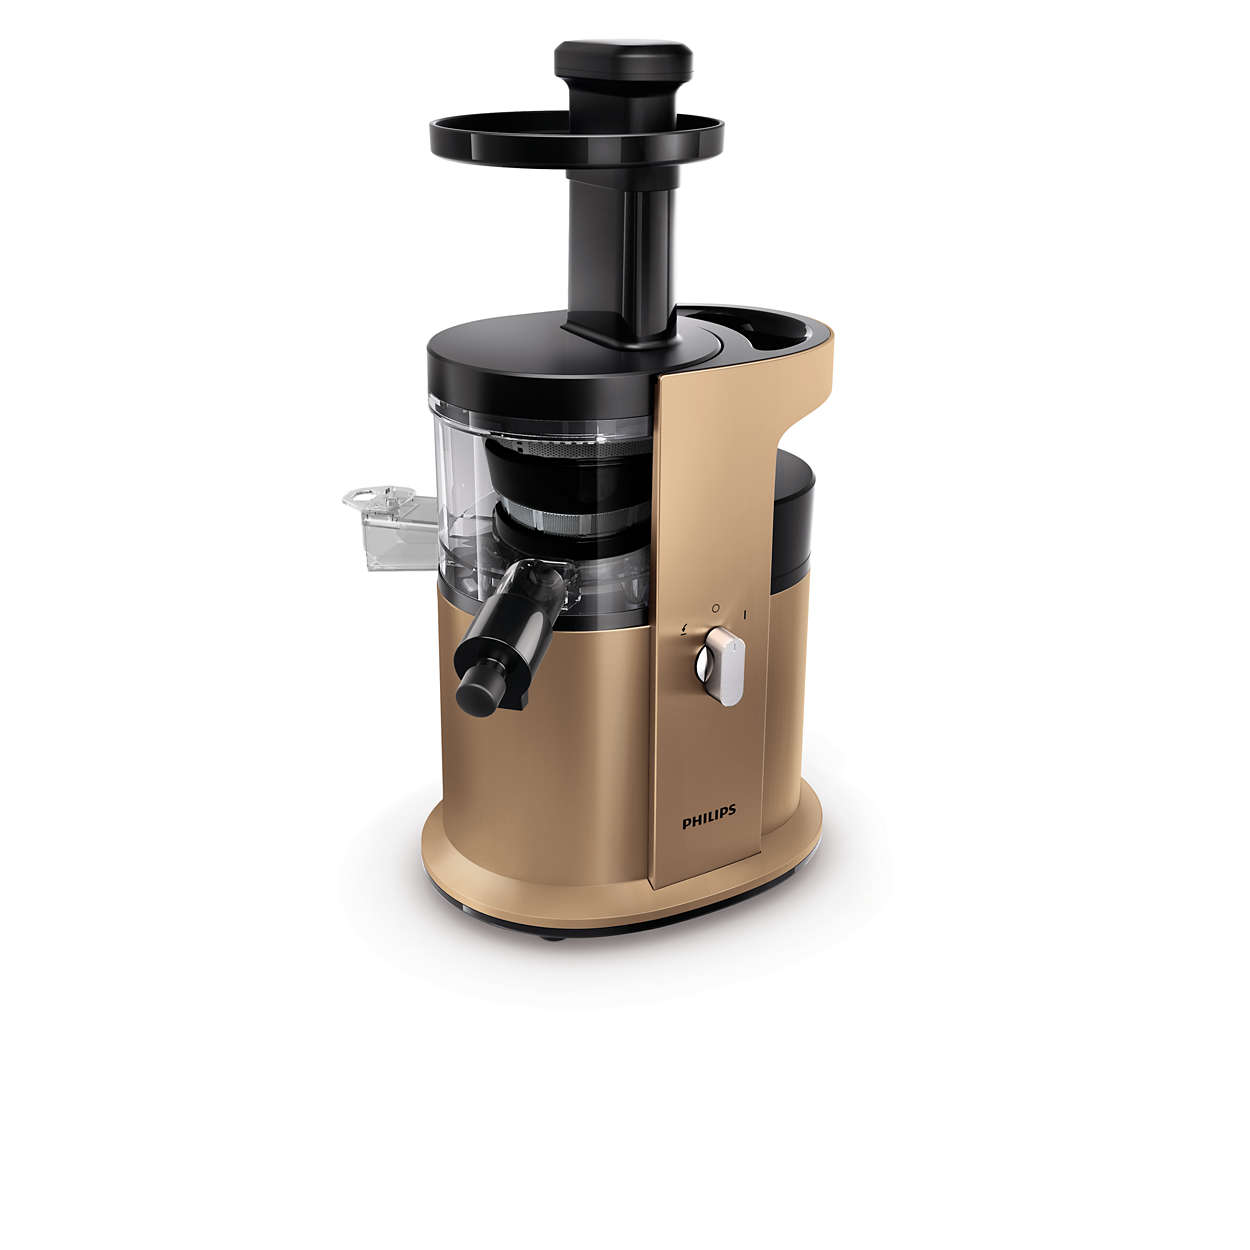 Slow Juicer Sorbetto : Avance Collection Slow Juicer con funzione sorbetto HR1883/31 Philips